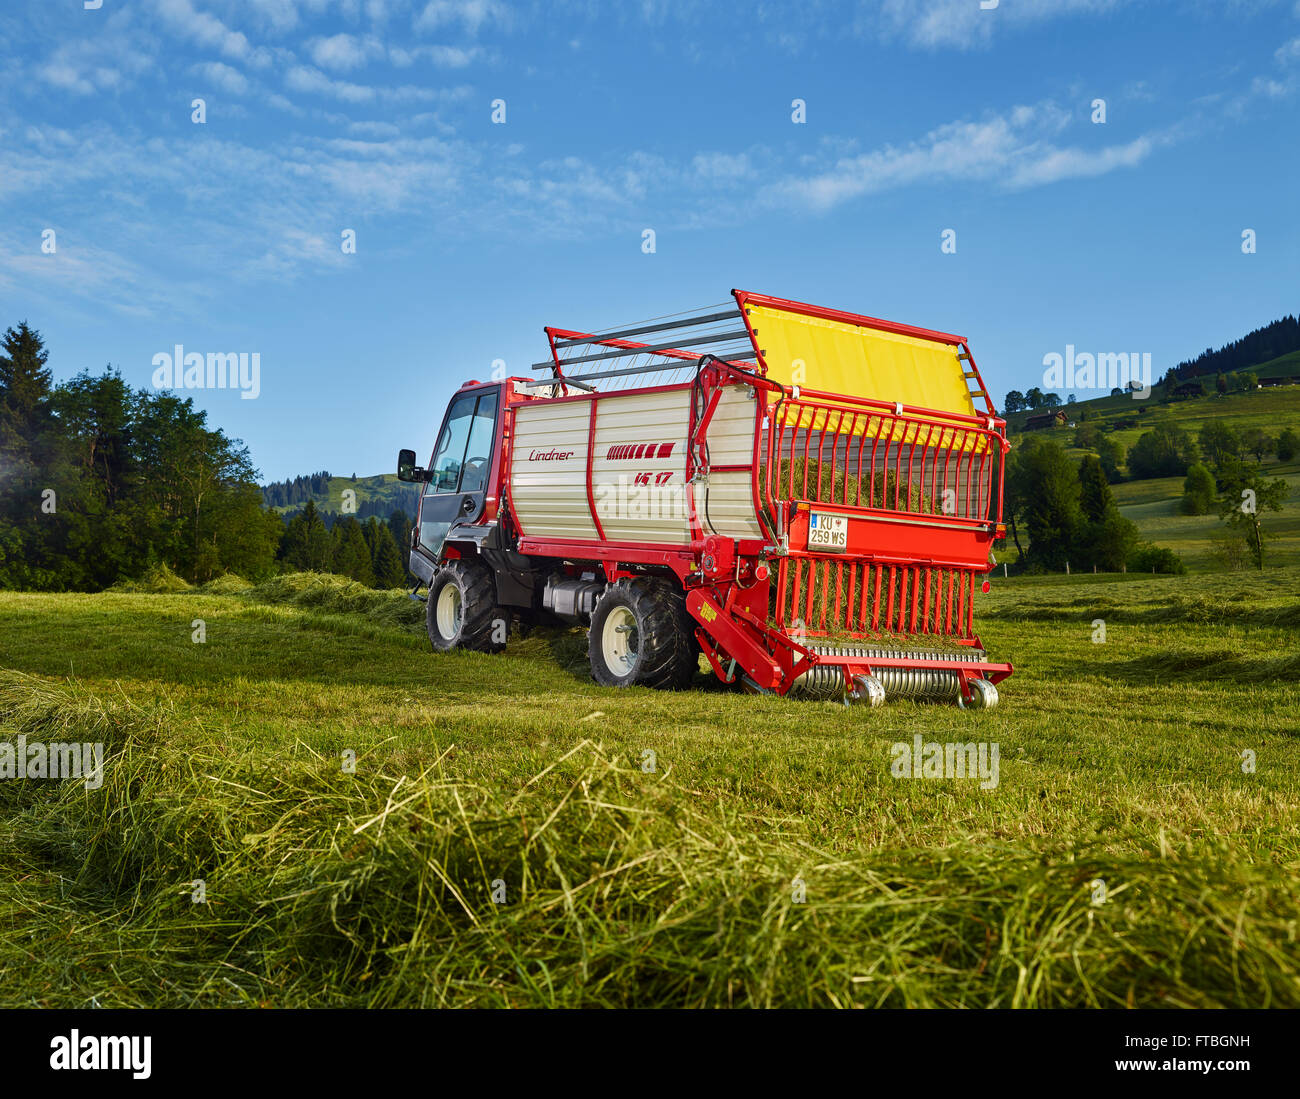 Unitrac transporter with forage trailer collecting the dried hay, Hopfgarten, Brixental, Tyrol, Austria - Stock Image